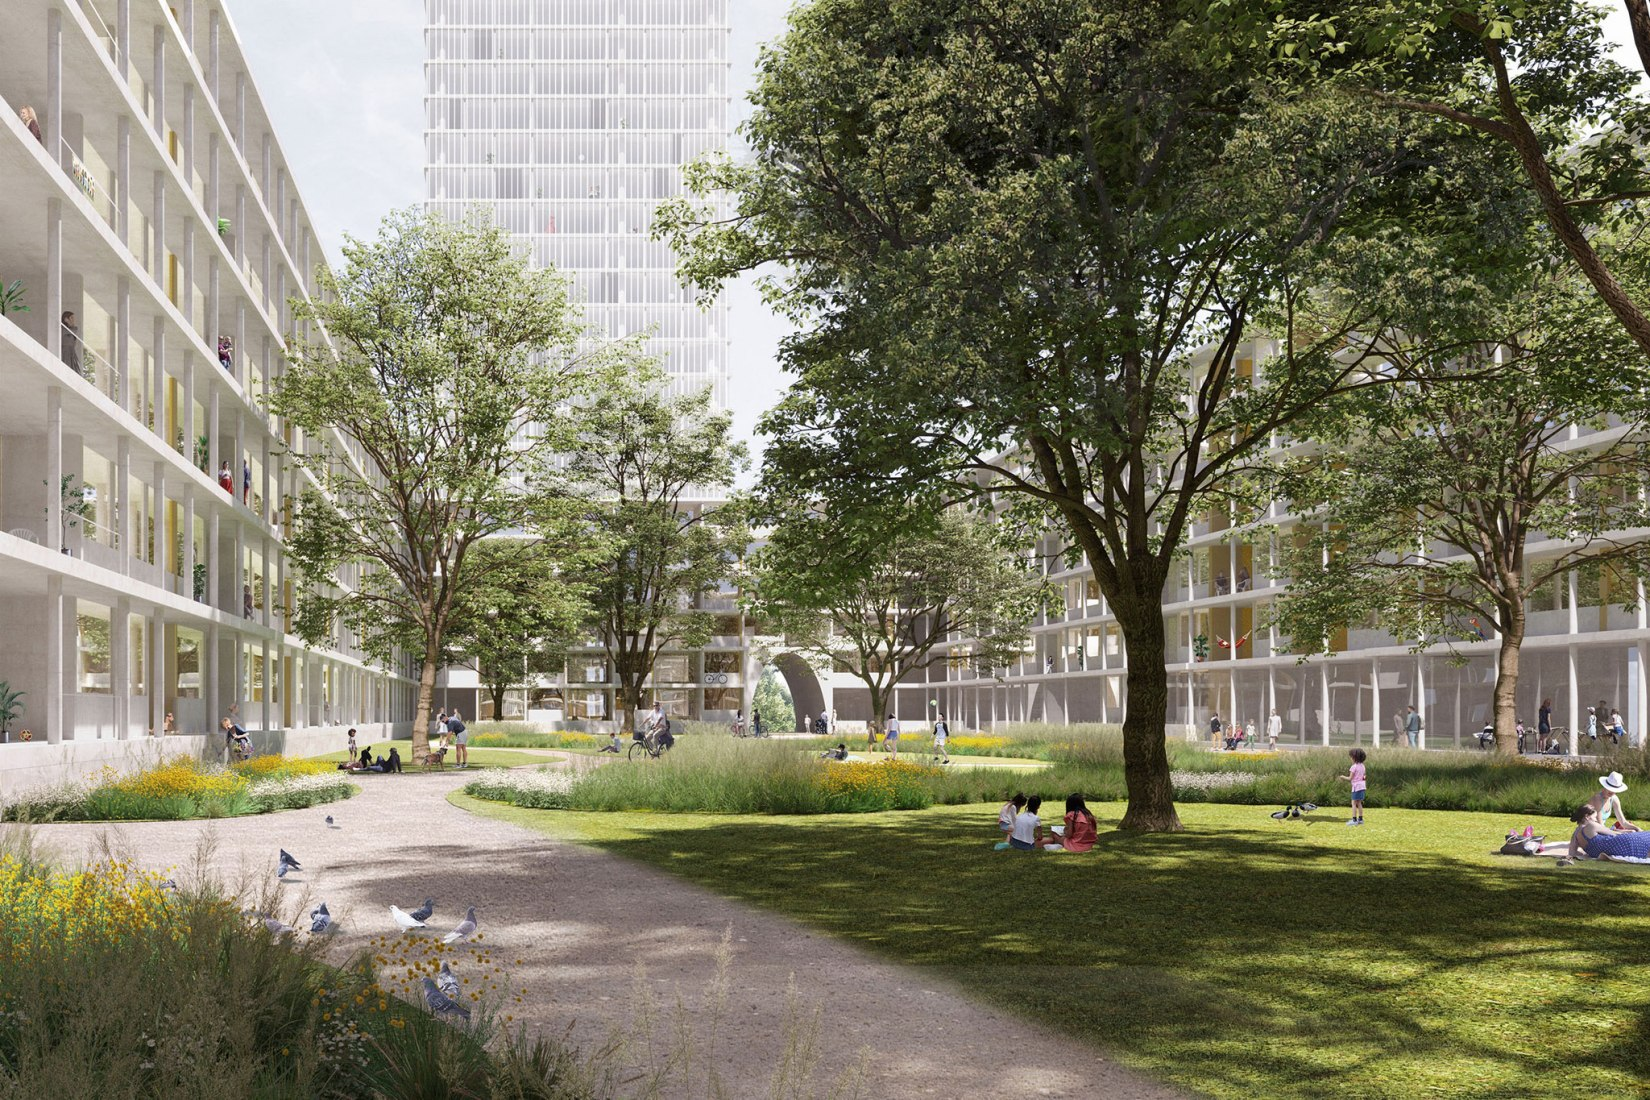 Rendering. David Chipperfield Architects Wins Competition to Transform Former Industrial Site in Berlin. Courtesy of David Chipperfield Architects